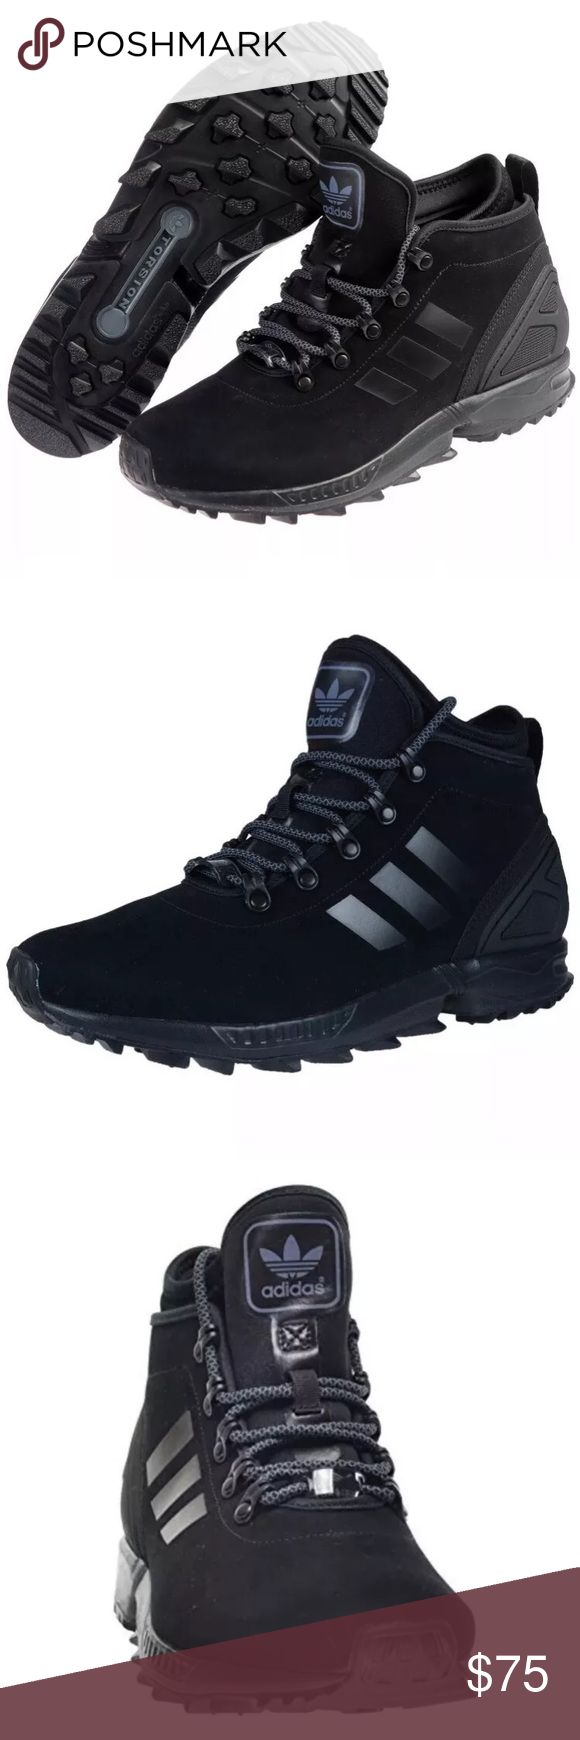 ADIDAS ZX FLUX WINTER SNEAKER BOOT MENS SIZE 8.5 Brand : adidas   Style Code : AQ8433  Color : Triple Black  Size : US Men's 8.5  Men's low top boot  Lace up closure  Signature adidas triple stripe logo detail on sides of shoe  Smooth nubuck suede upper  Tongue with adidas trefoil logo  Cushioned inner sole for comfort  Reinforced traction rubber outsole for ultimate performance   Synthetic   Mesh lining   Grippy, winter-specific rubber outsole   Suede upper   Internal neoprene sock…